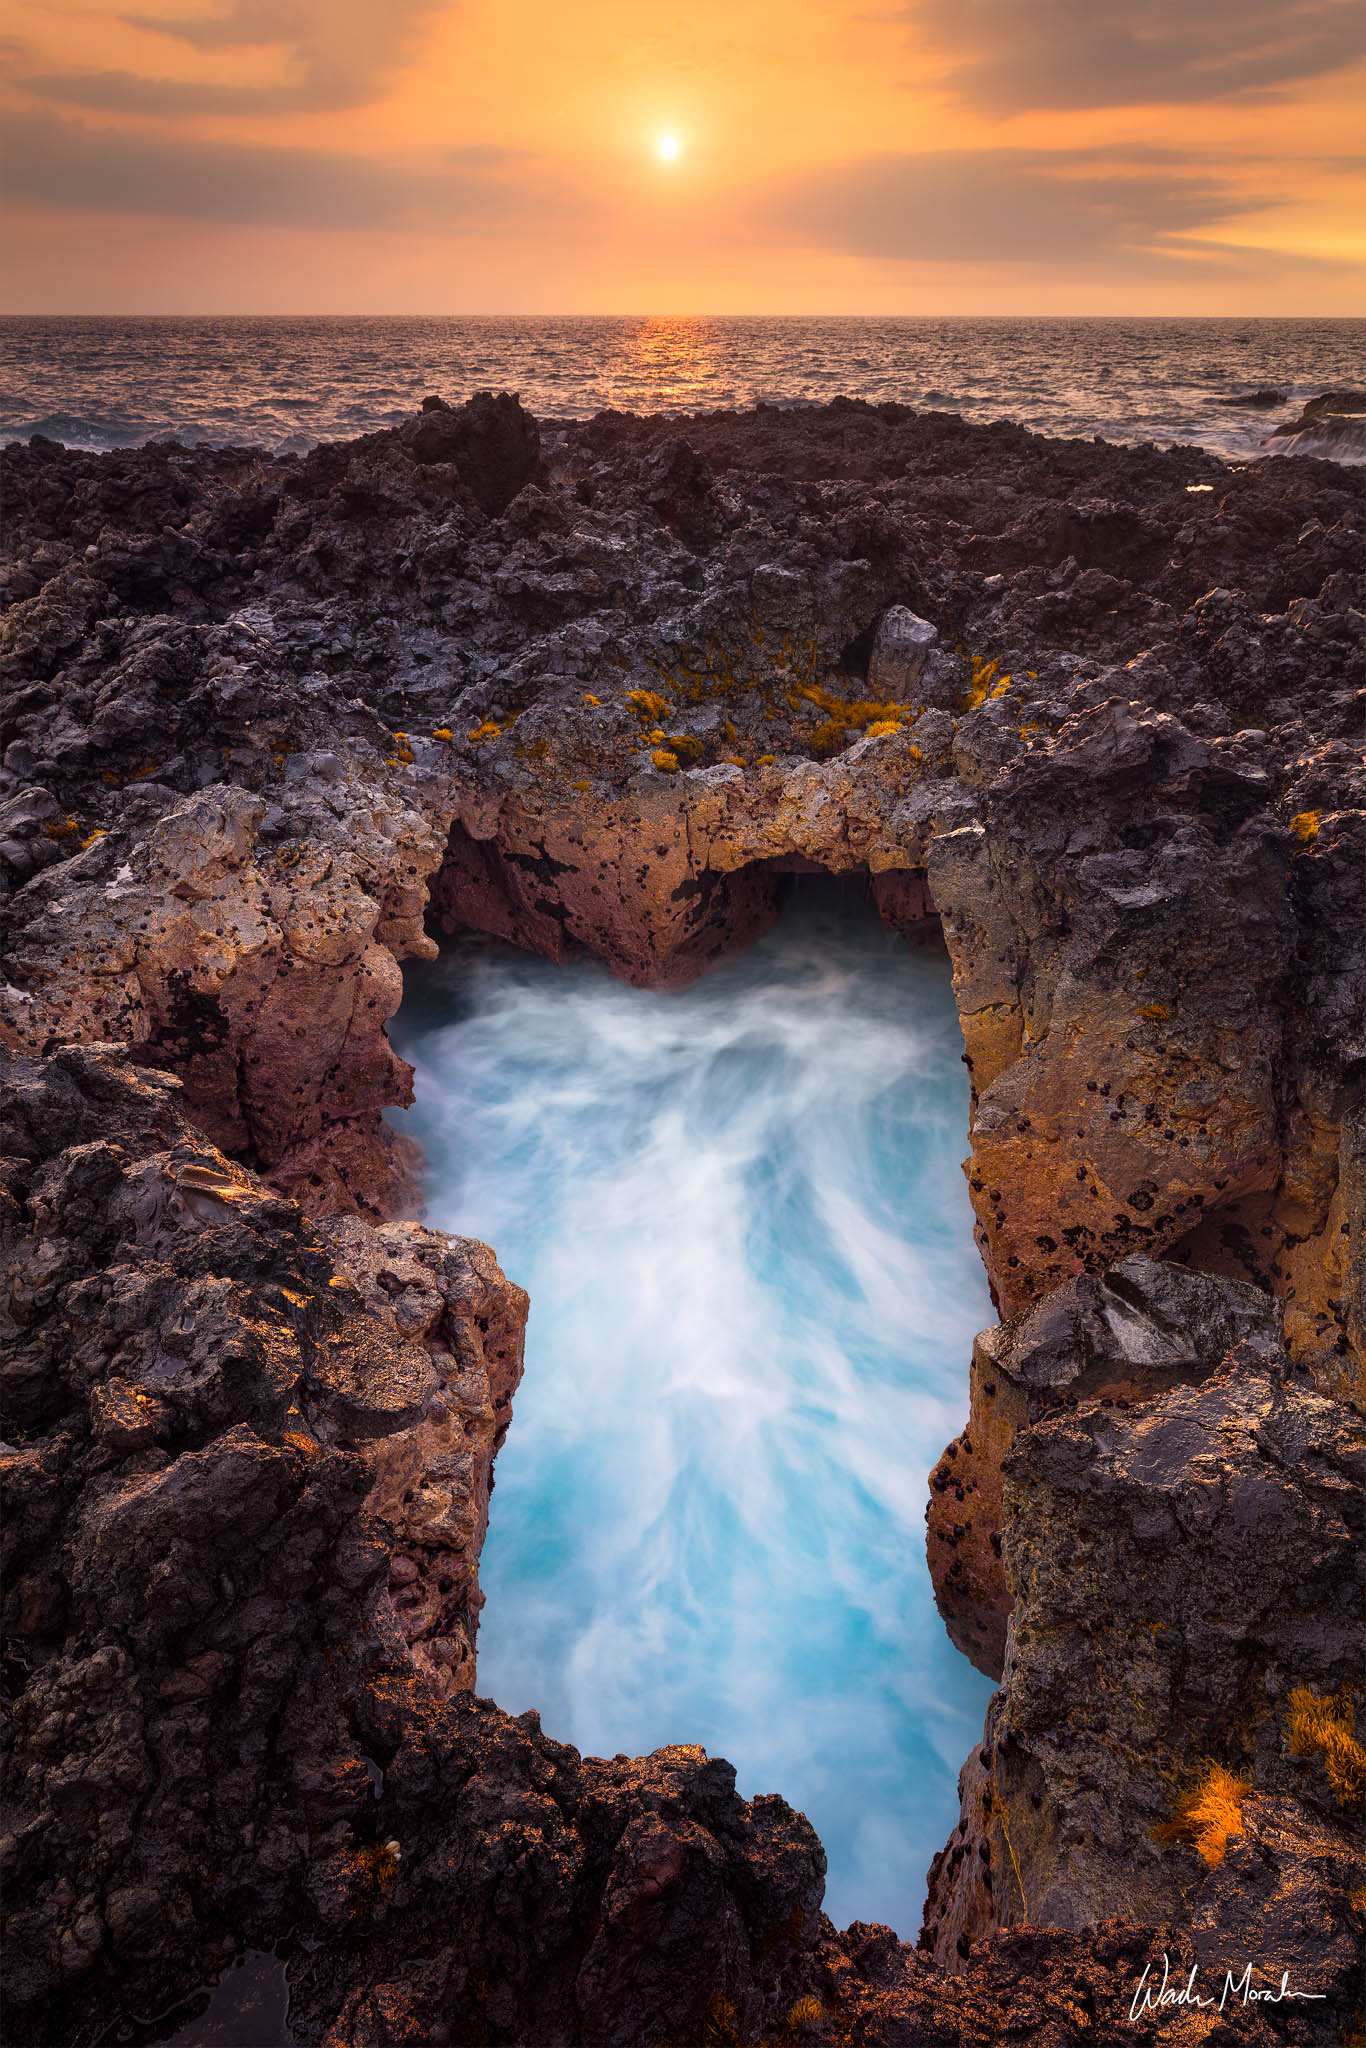 Located in South Kona of the Big Island, this unusually shaped blowhole caught my attention while scouting the coastline. The...